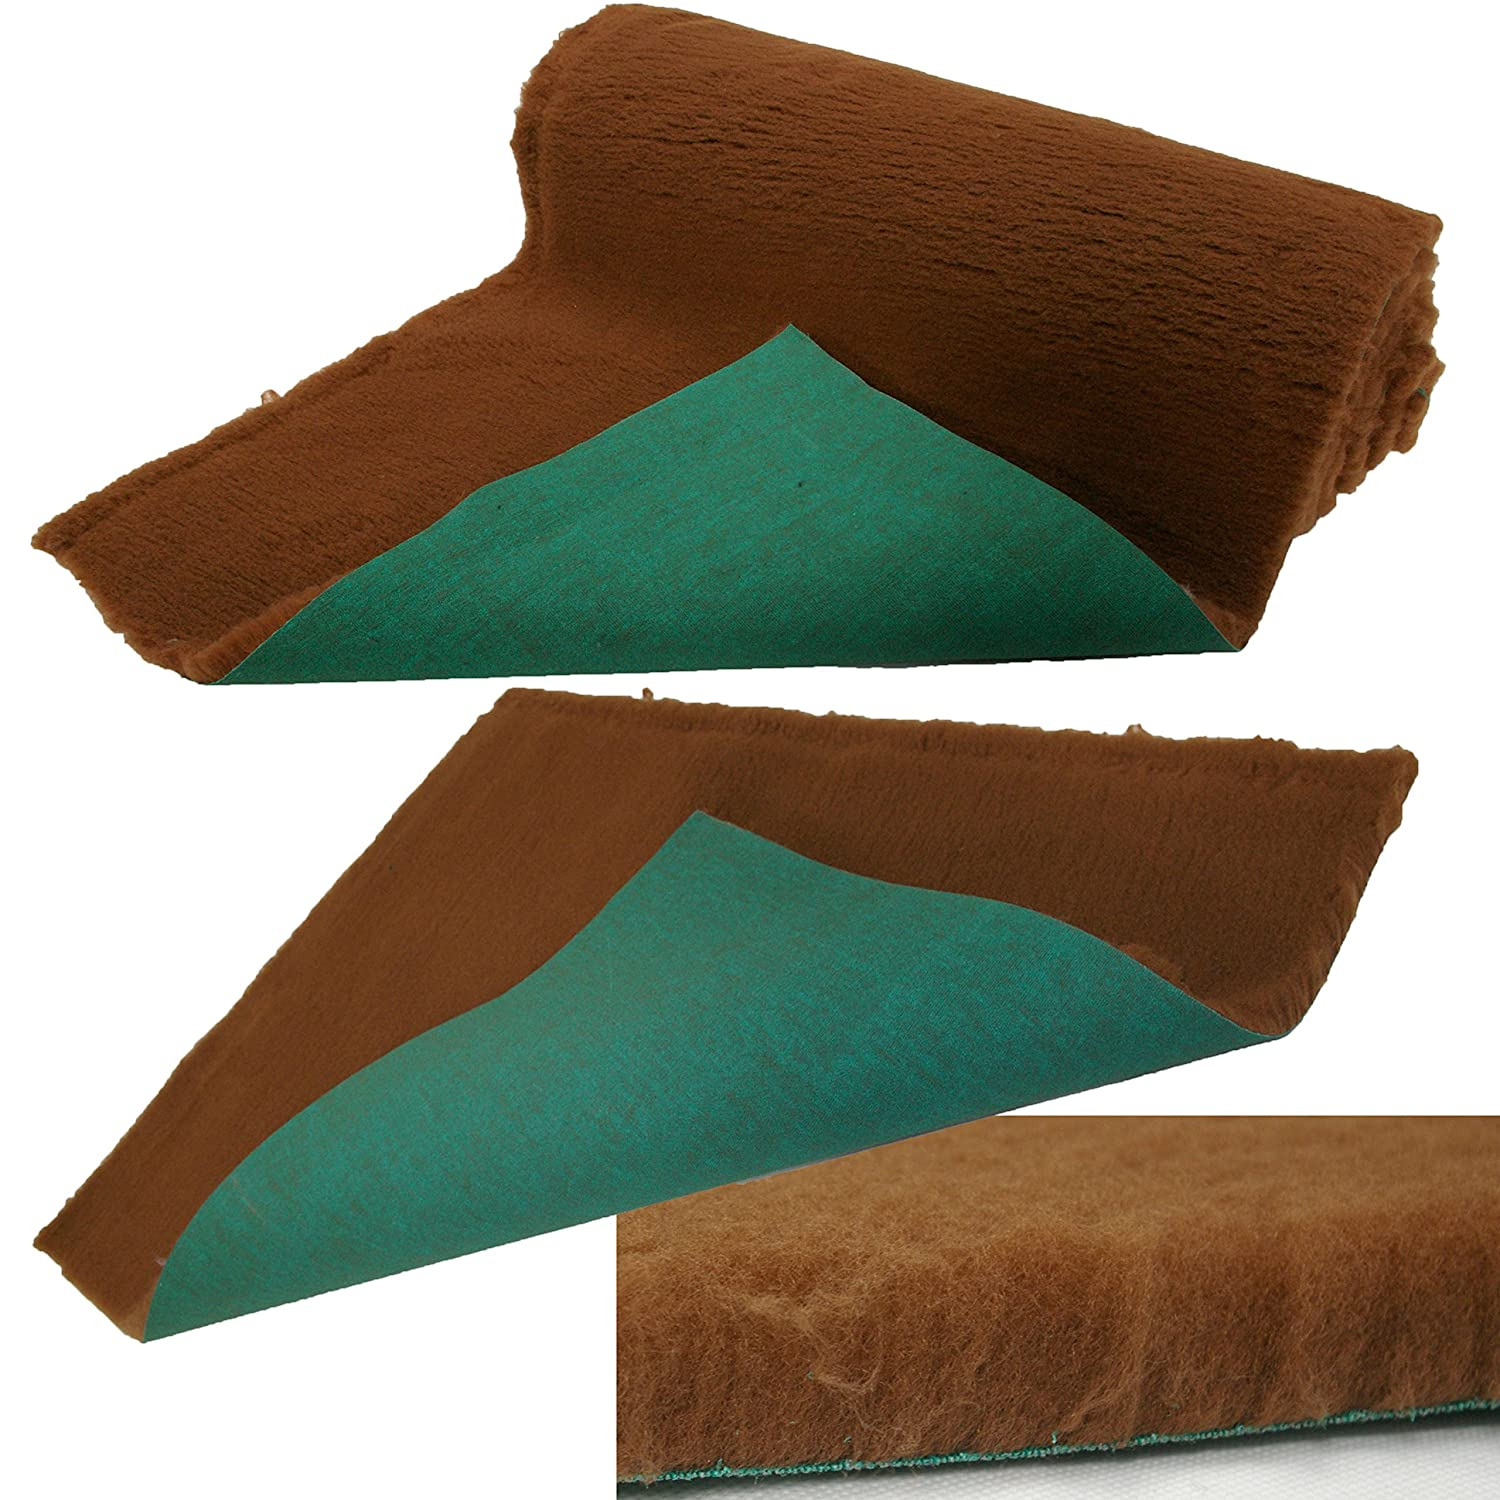 5 Metre x 75cm ROLL SoulPet Traditional Brown High-Grade Vet Bedding 30mm THICK ROLL WHELPING FLEECE DOG PUPPY PRO BED